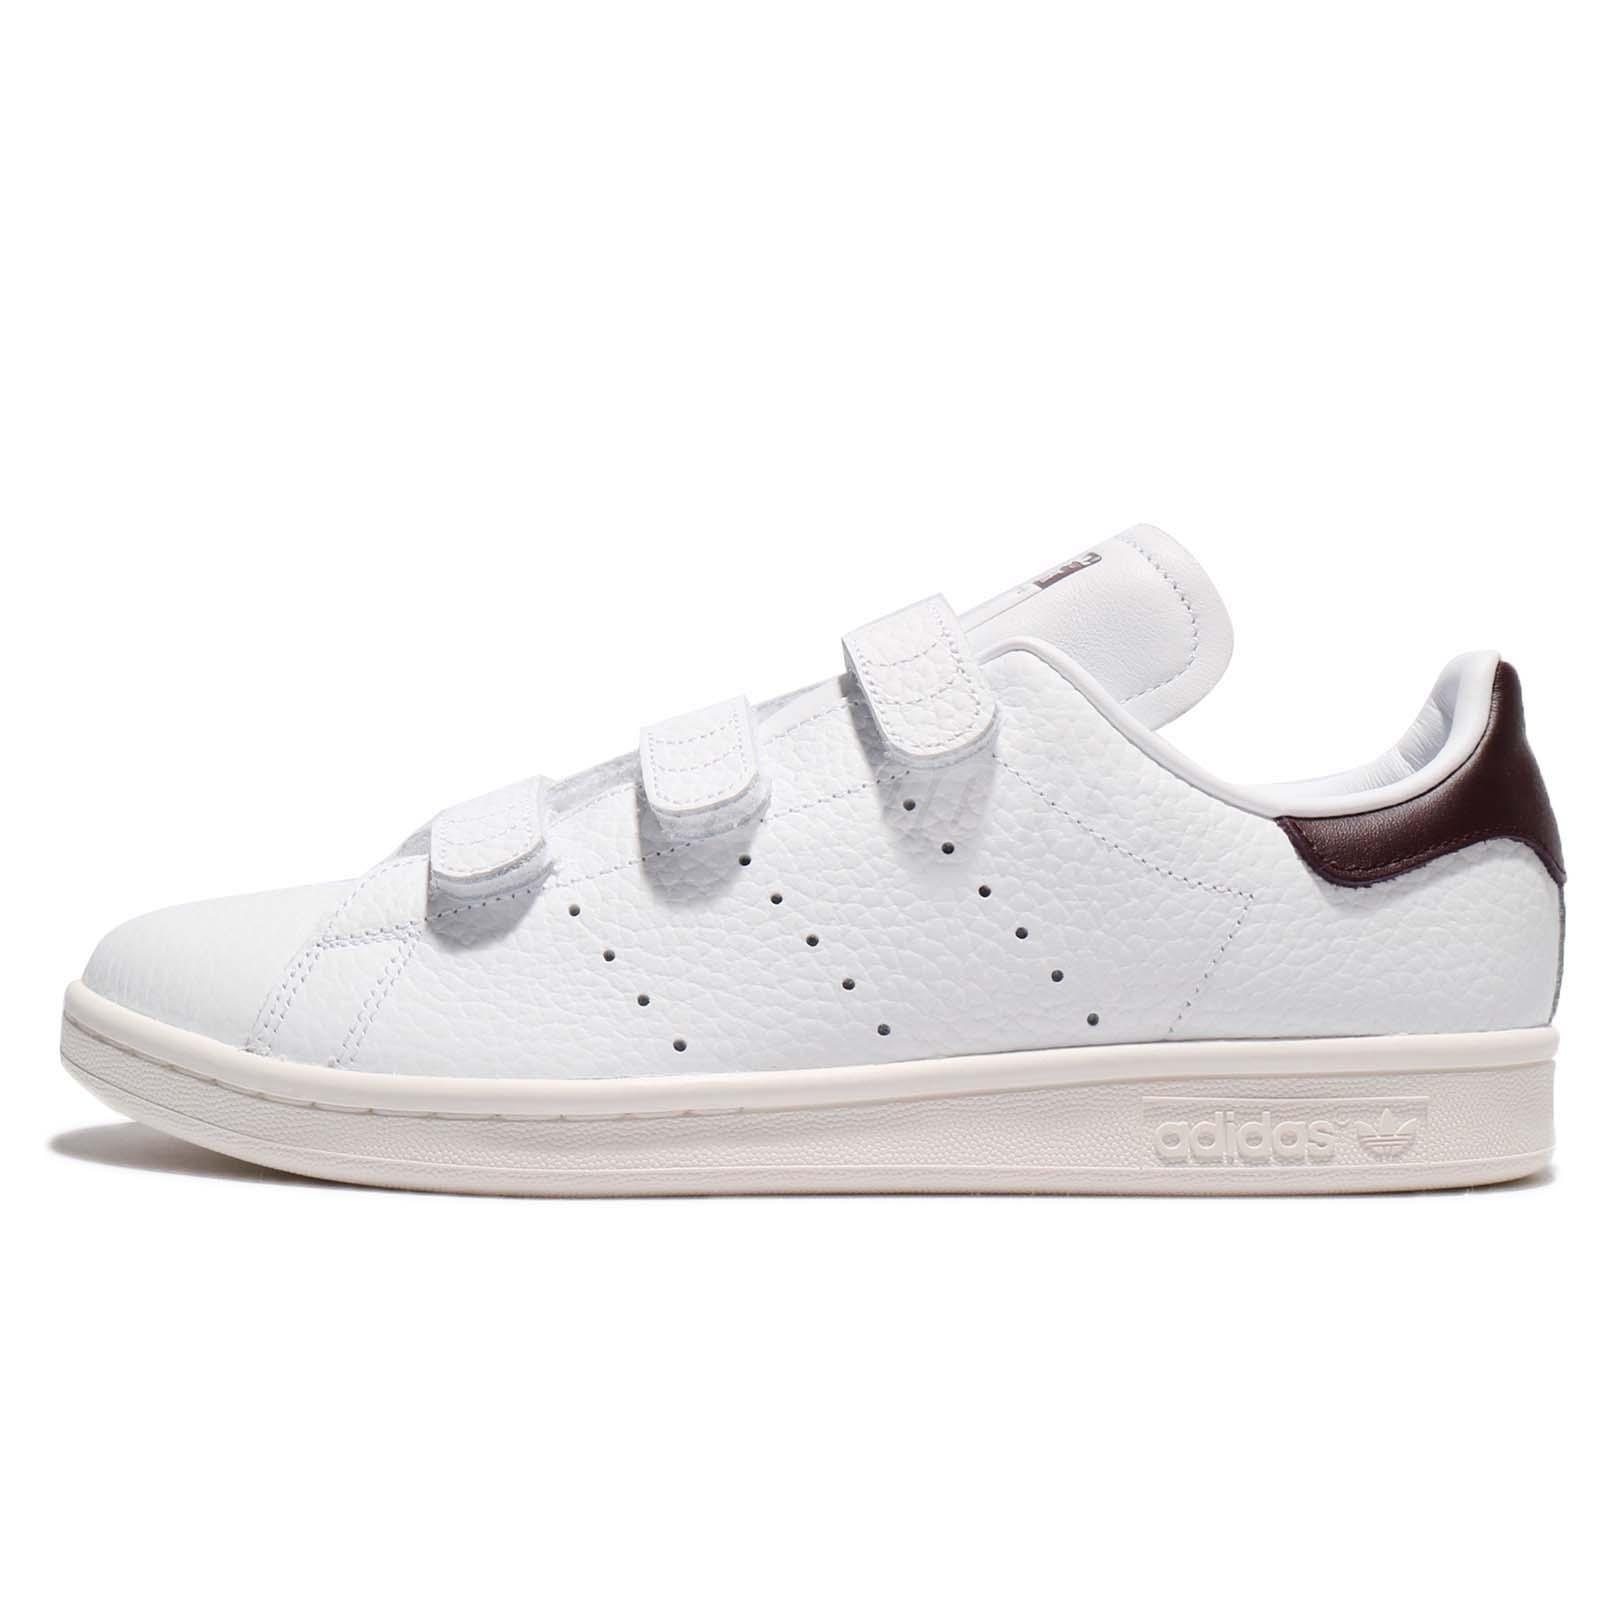 adidas Originals Stan Smith CF White Dark Brown Strap Men Shoes Sneakers  BZ0534